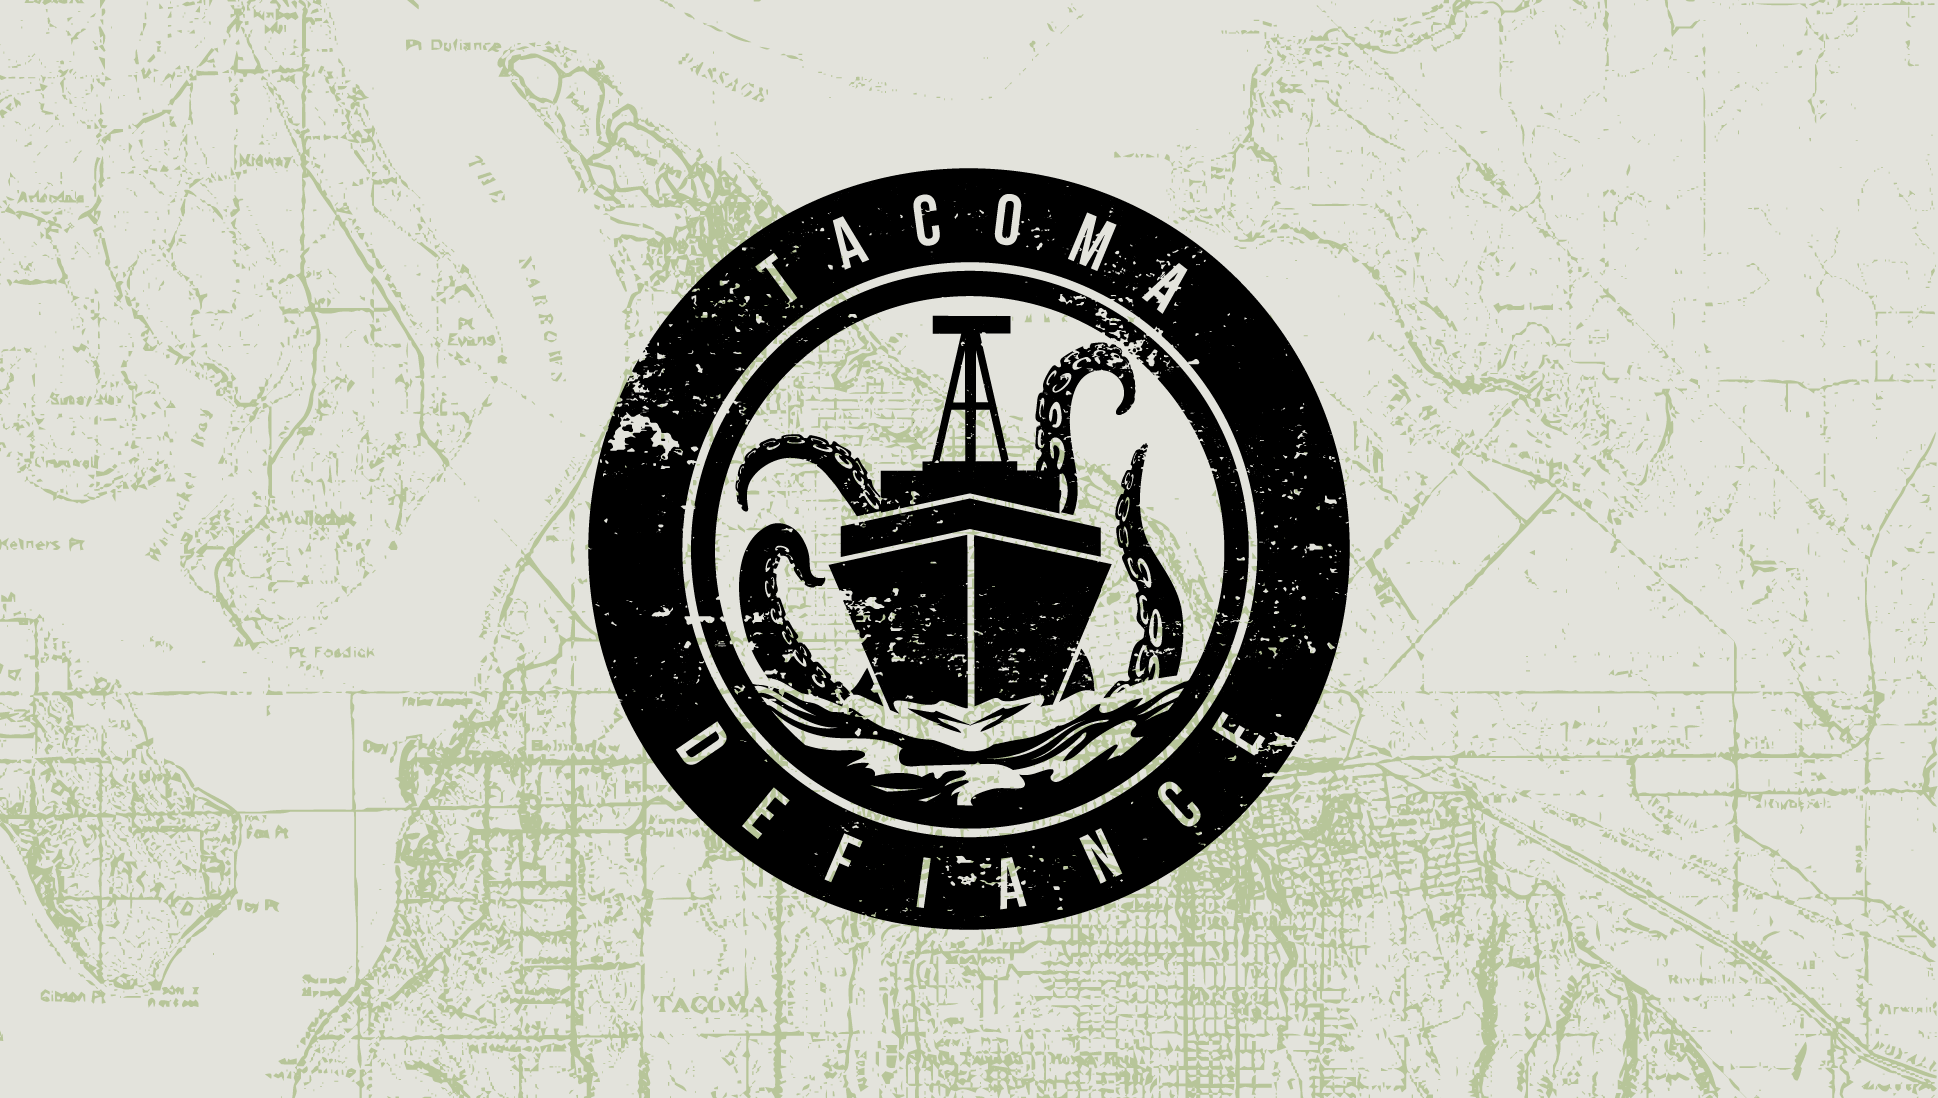 Map of Tacoma with Tacoma Defiance logo